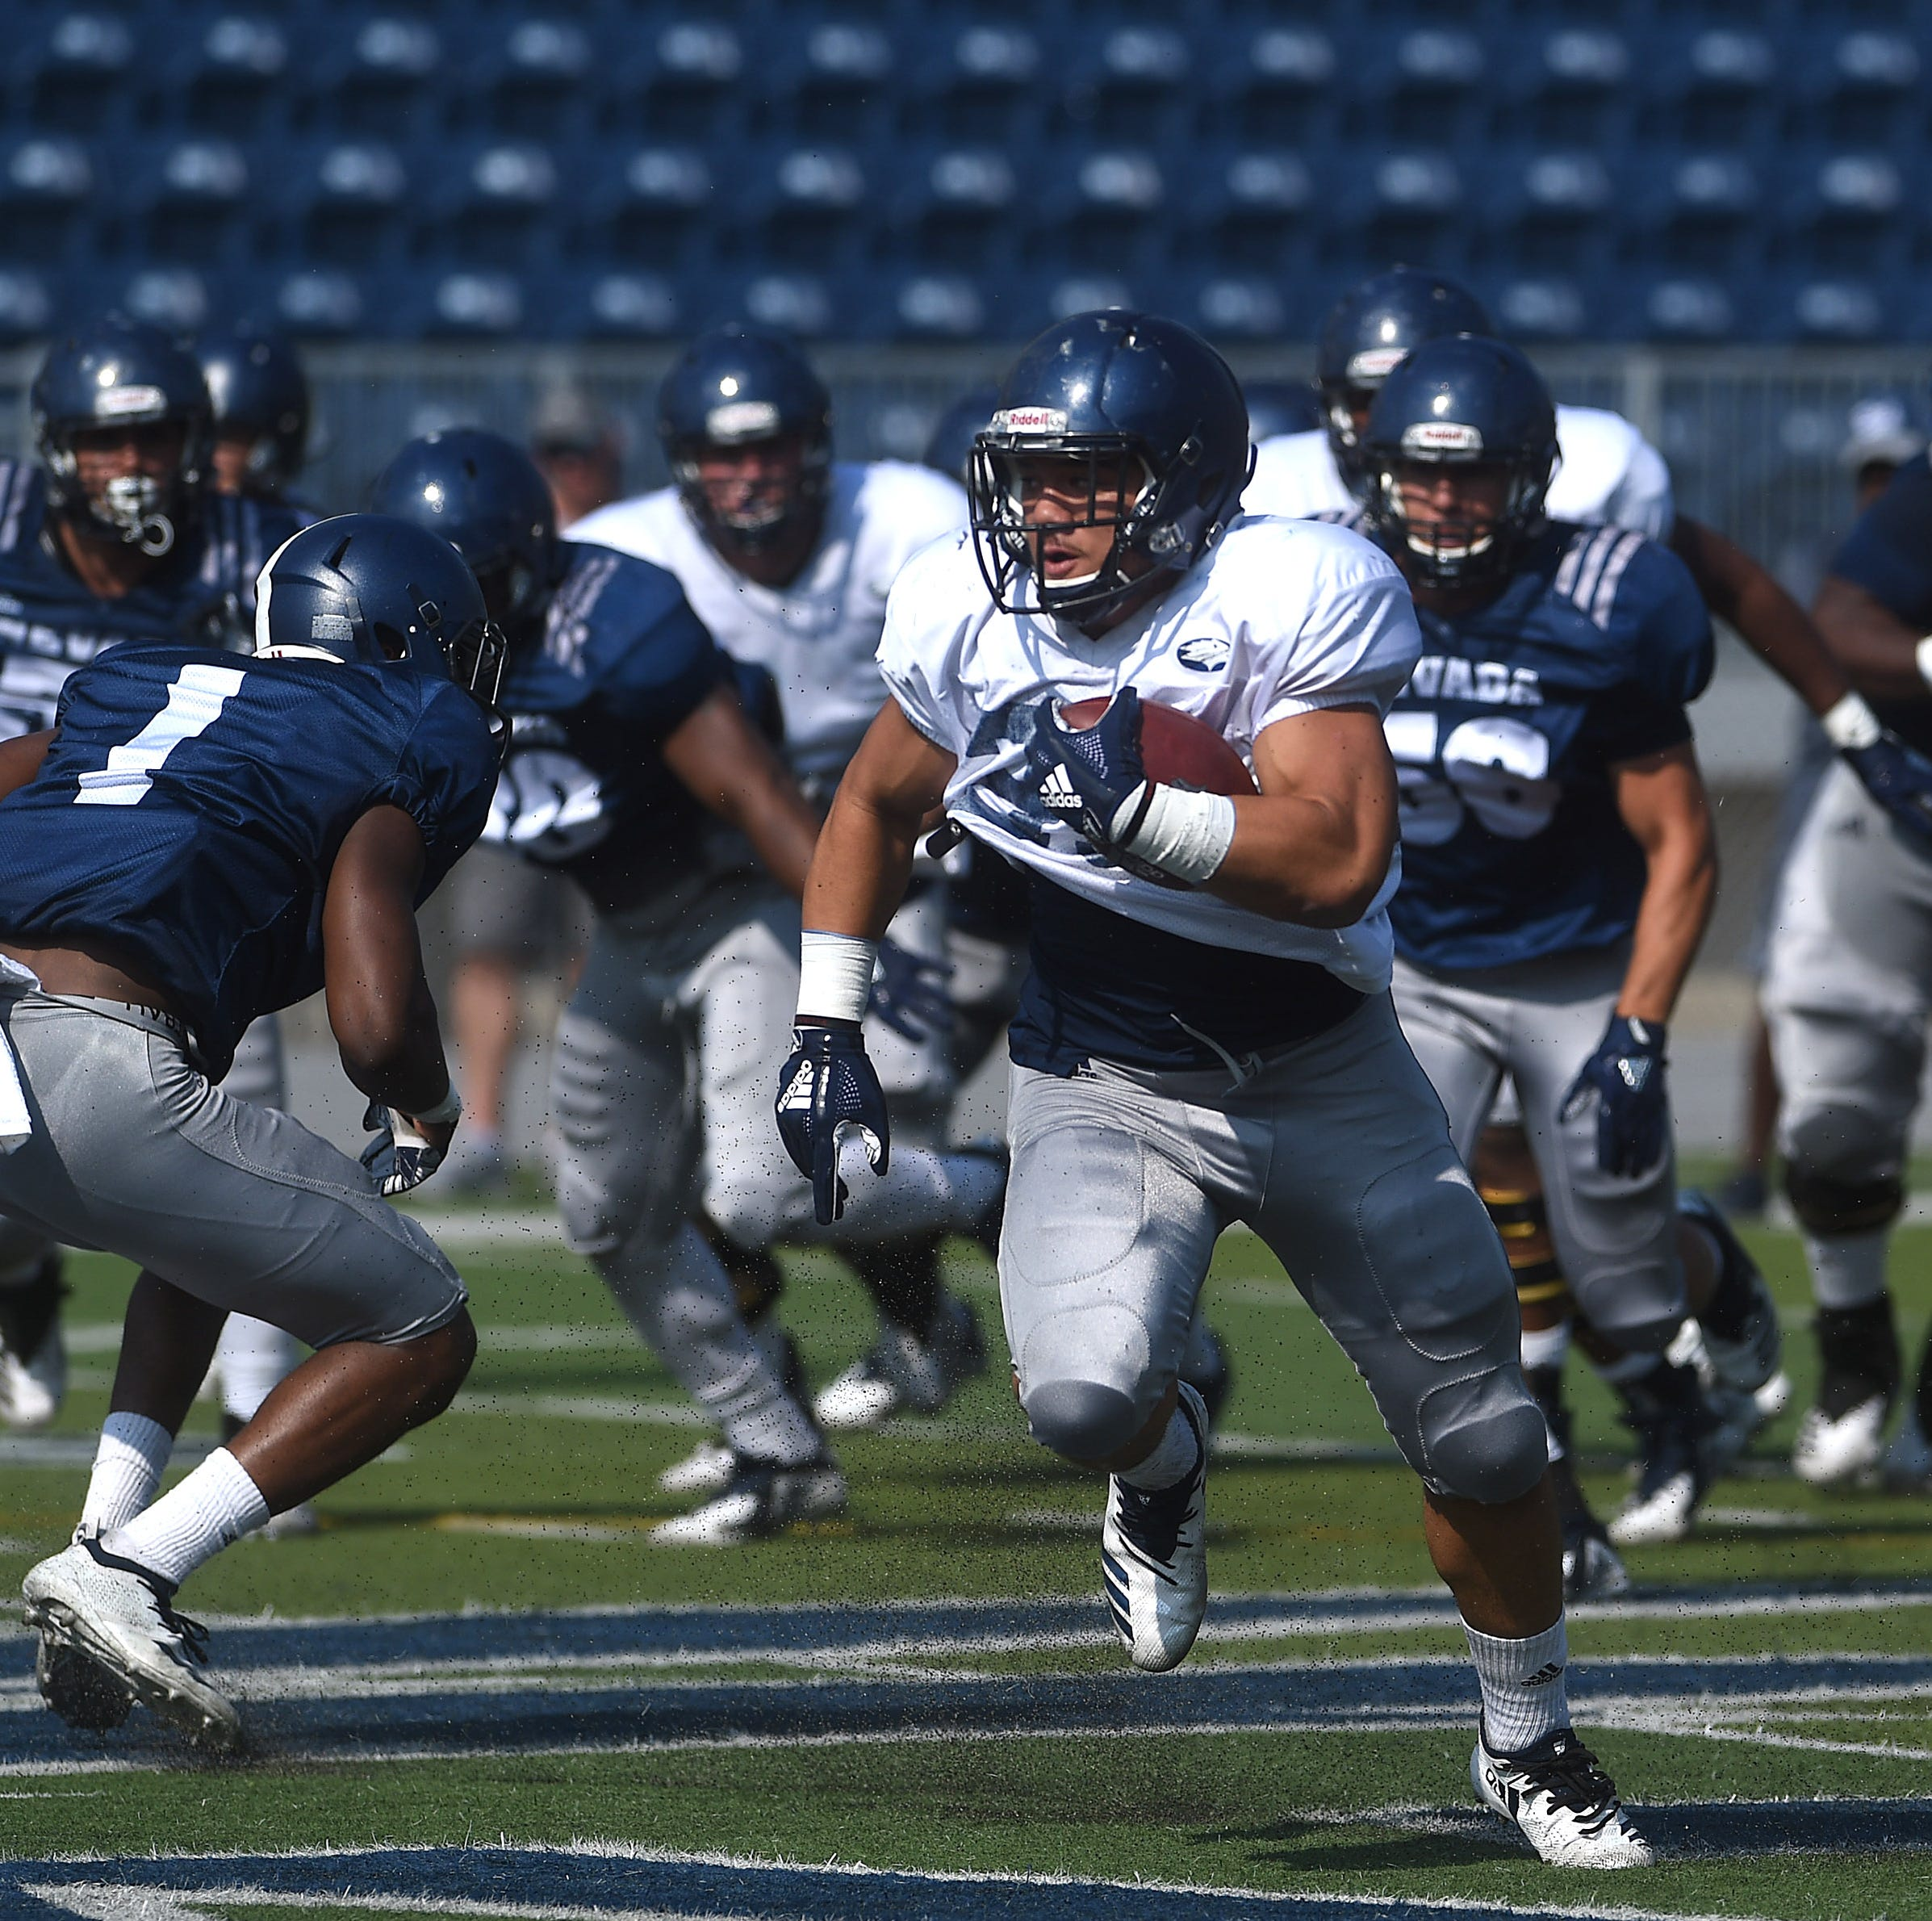 Full-speed football: Wolf Pack gets in 100-plus plays at first scrimmage